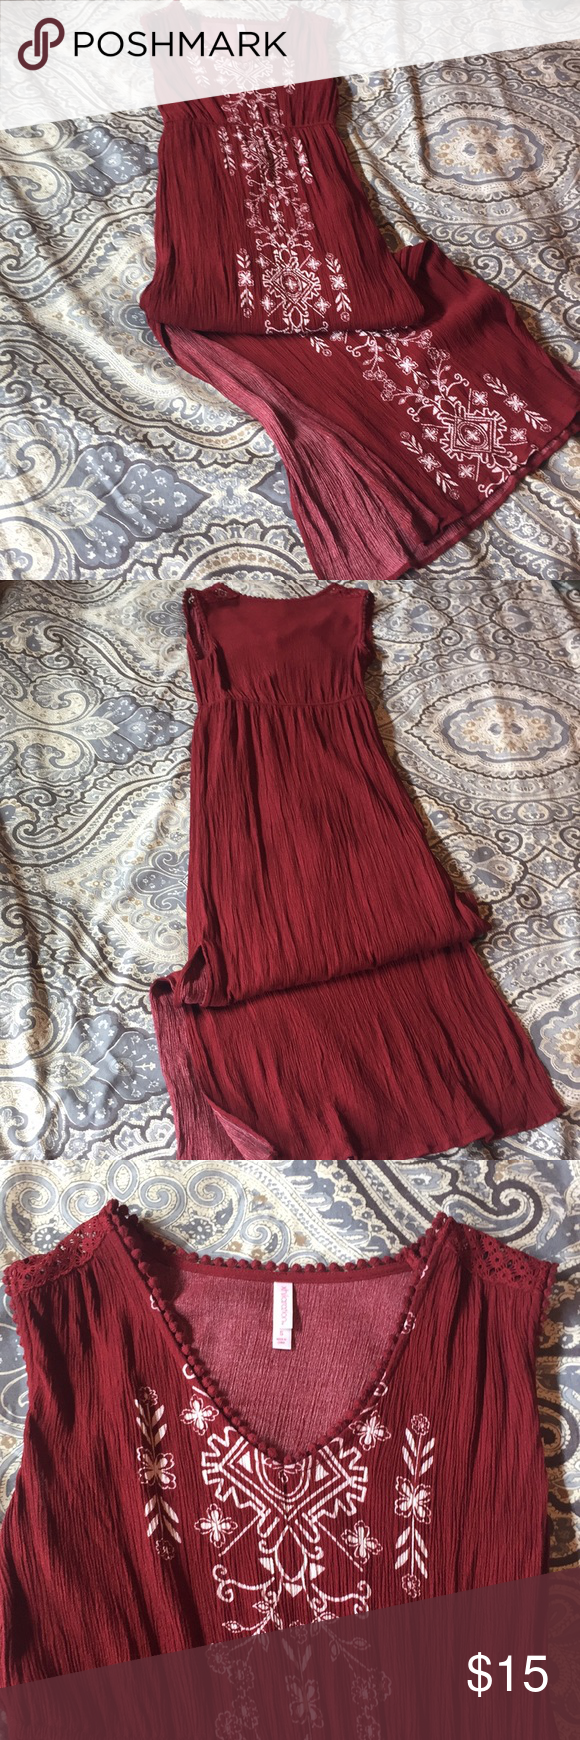 Xhilaration Maxi Great Summer Dress To Be Dressed Up Or Down Boho Vibe And Deep Reddish Burgundy Color Euc Worn Onc Clothes Design Summer Dresses Maxi [ 1740 x 580 Pixel ]